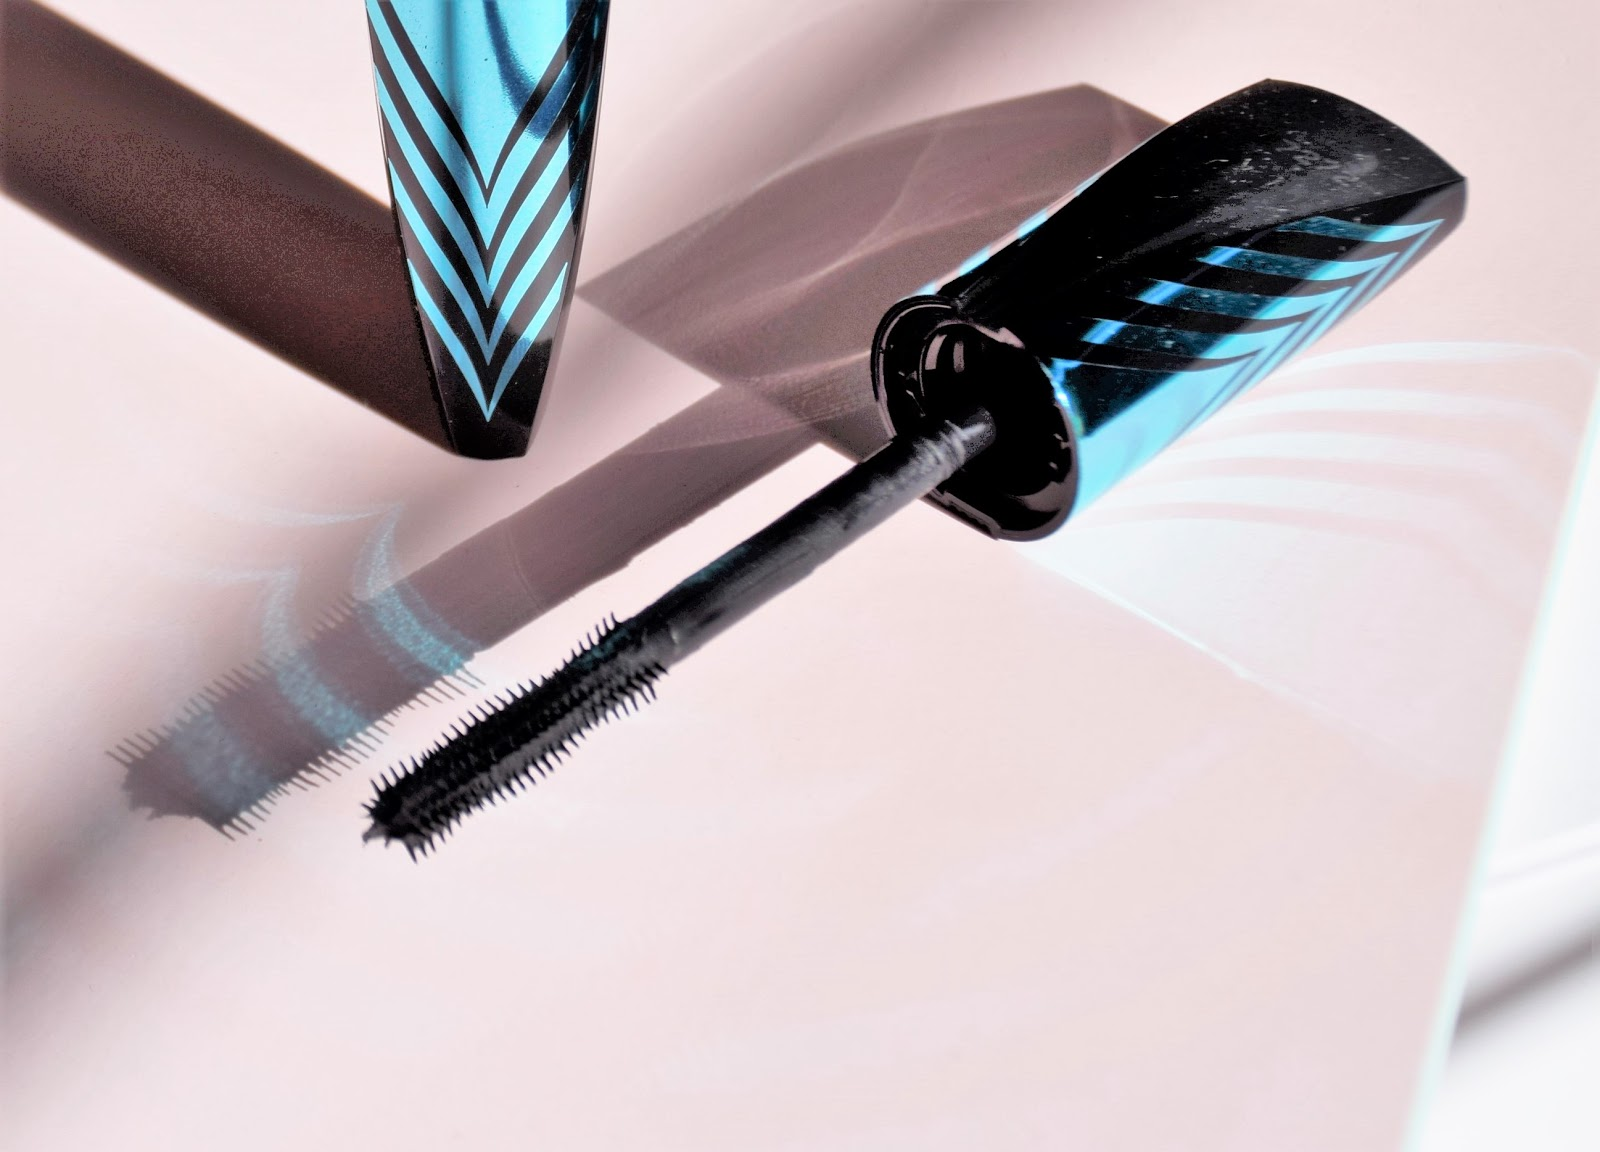 Australian Beauty Reviews Klara Reset Aqua 30ml Covergirl Peacock Flare Mascara Comes In A Pretty Tube It Has Medium Size Brush With Bristles Twist Pattern I Really Like Its